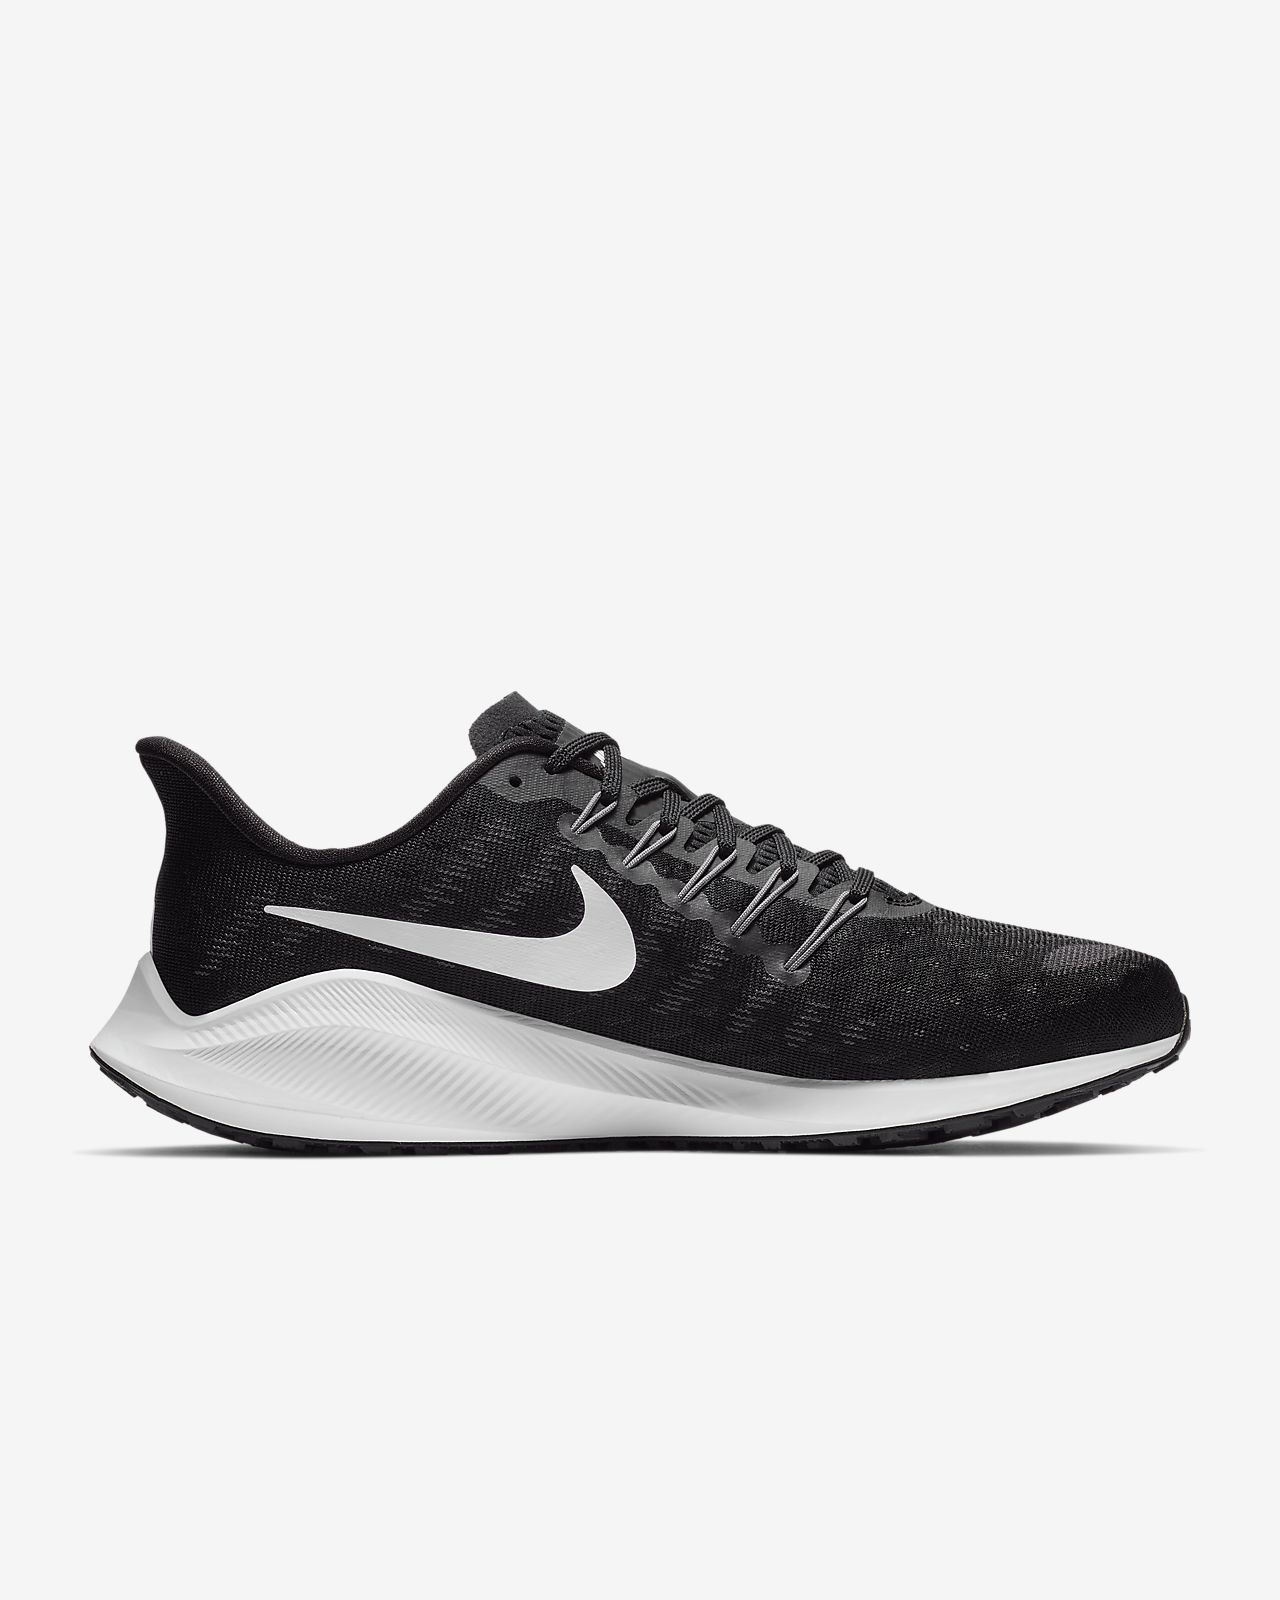 Nike Air Zoom Vomero 14 Men's Running Shoe (Wide)